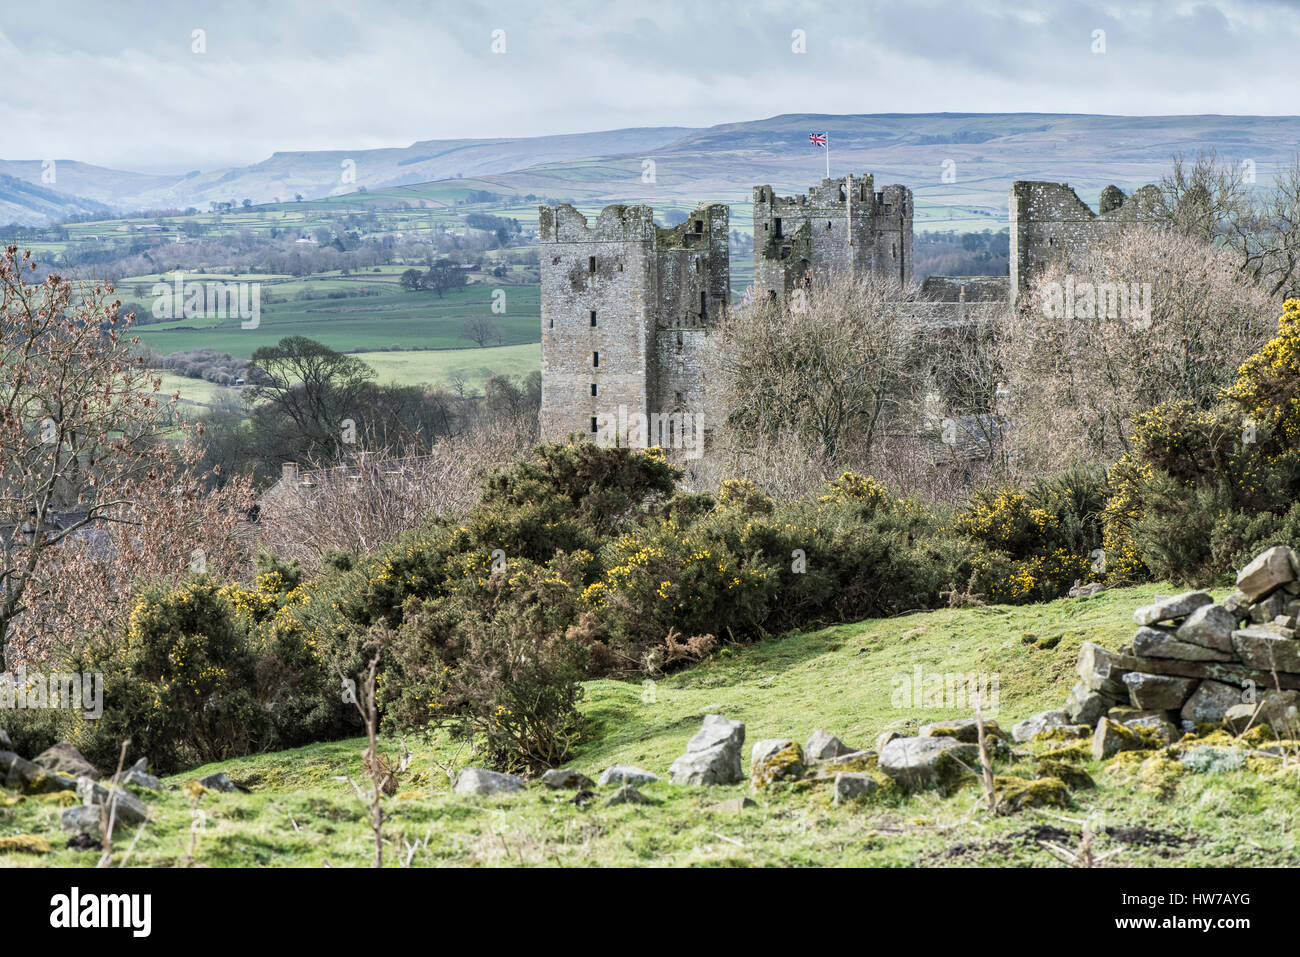 Bolton Castle, Castle Bolton, Wensleydale with a view up Bishopdale. This 14th century castle in the Yorkshire Dales - Stock Image